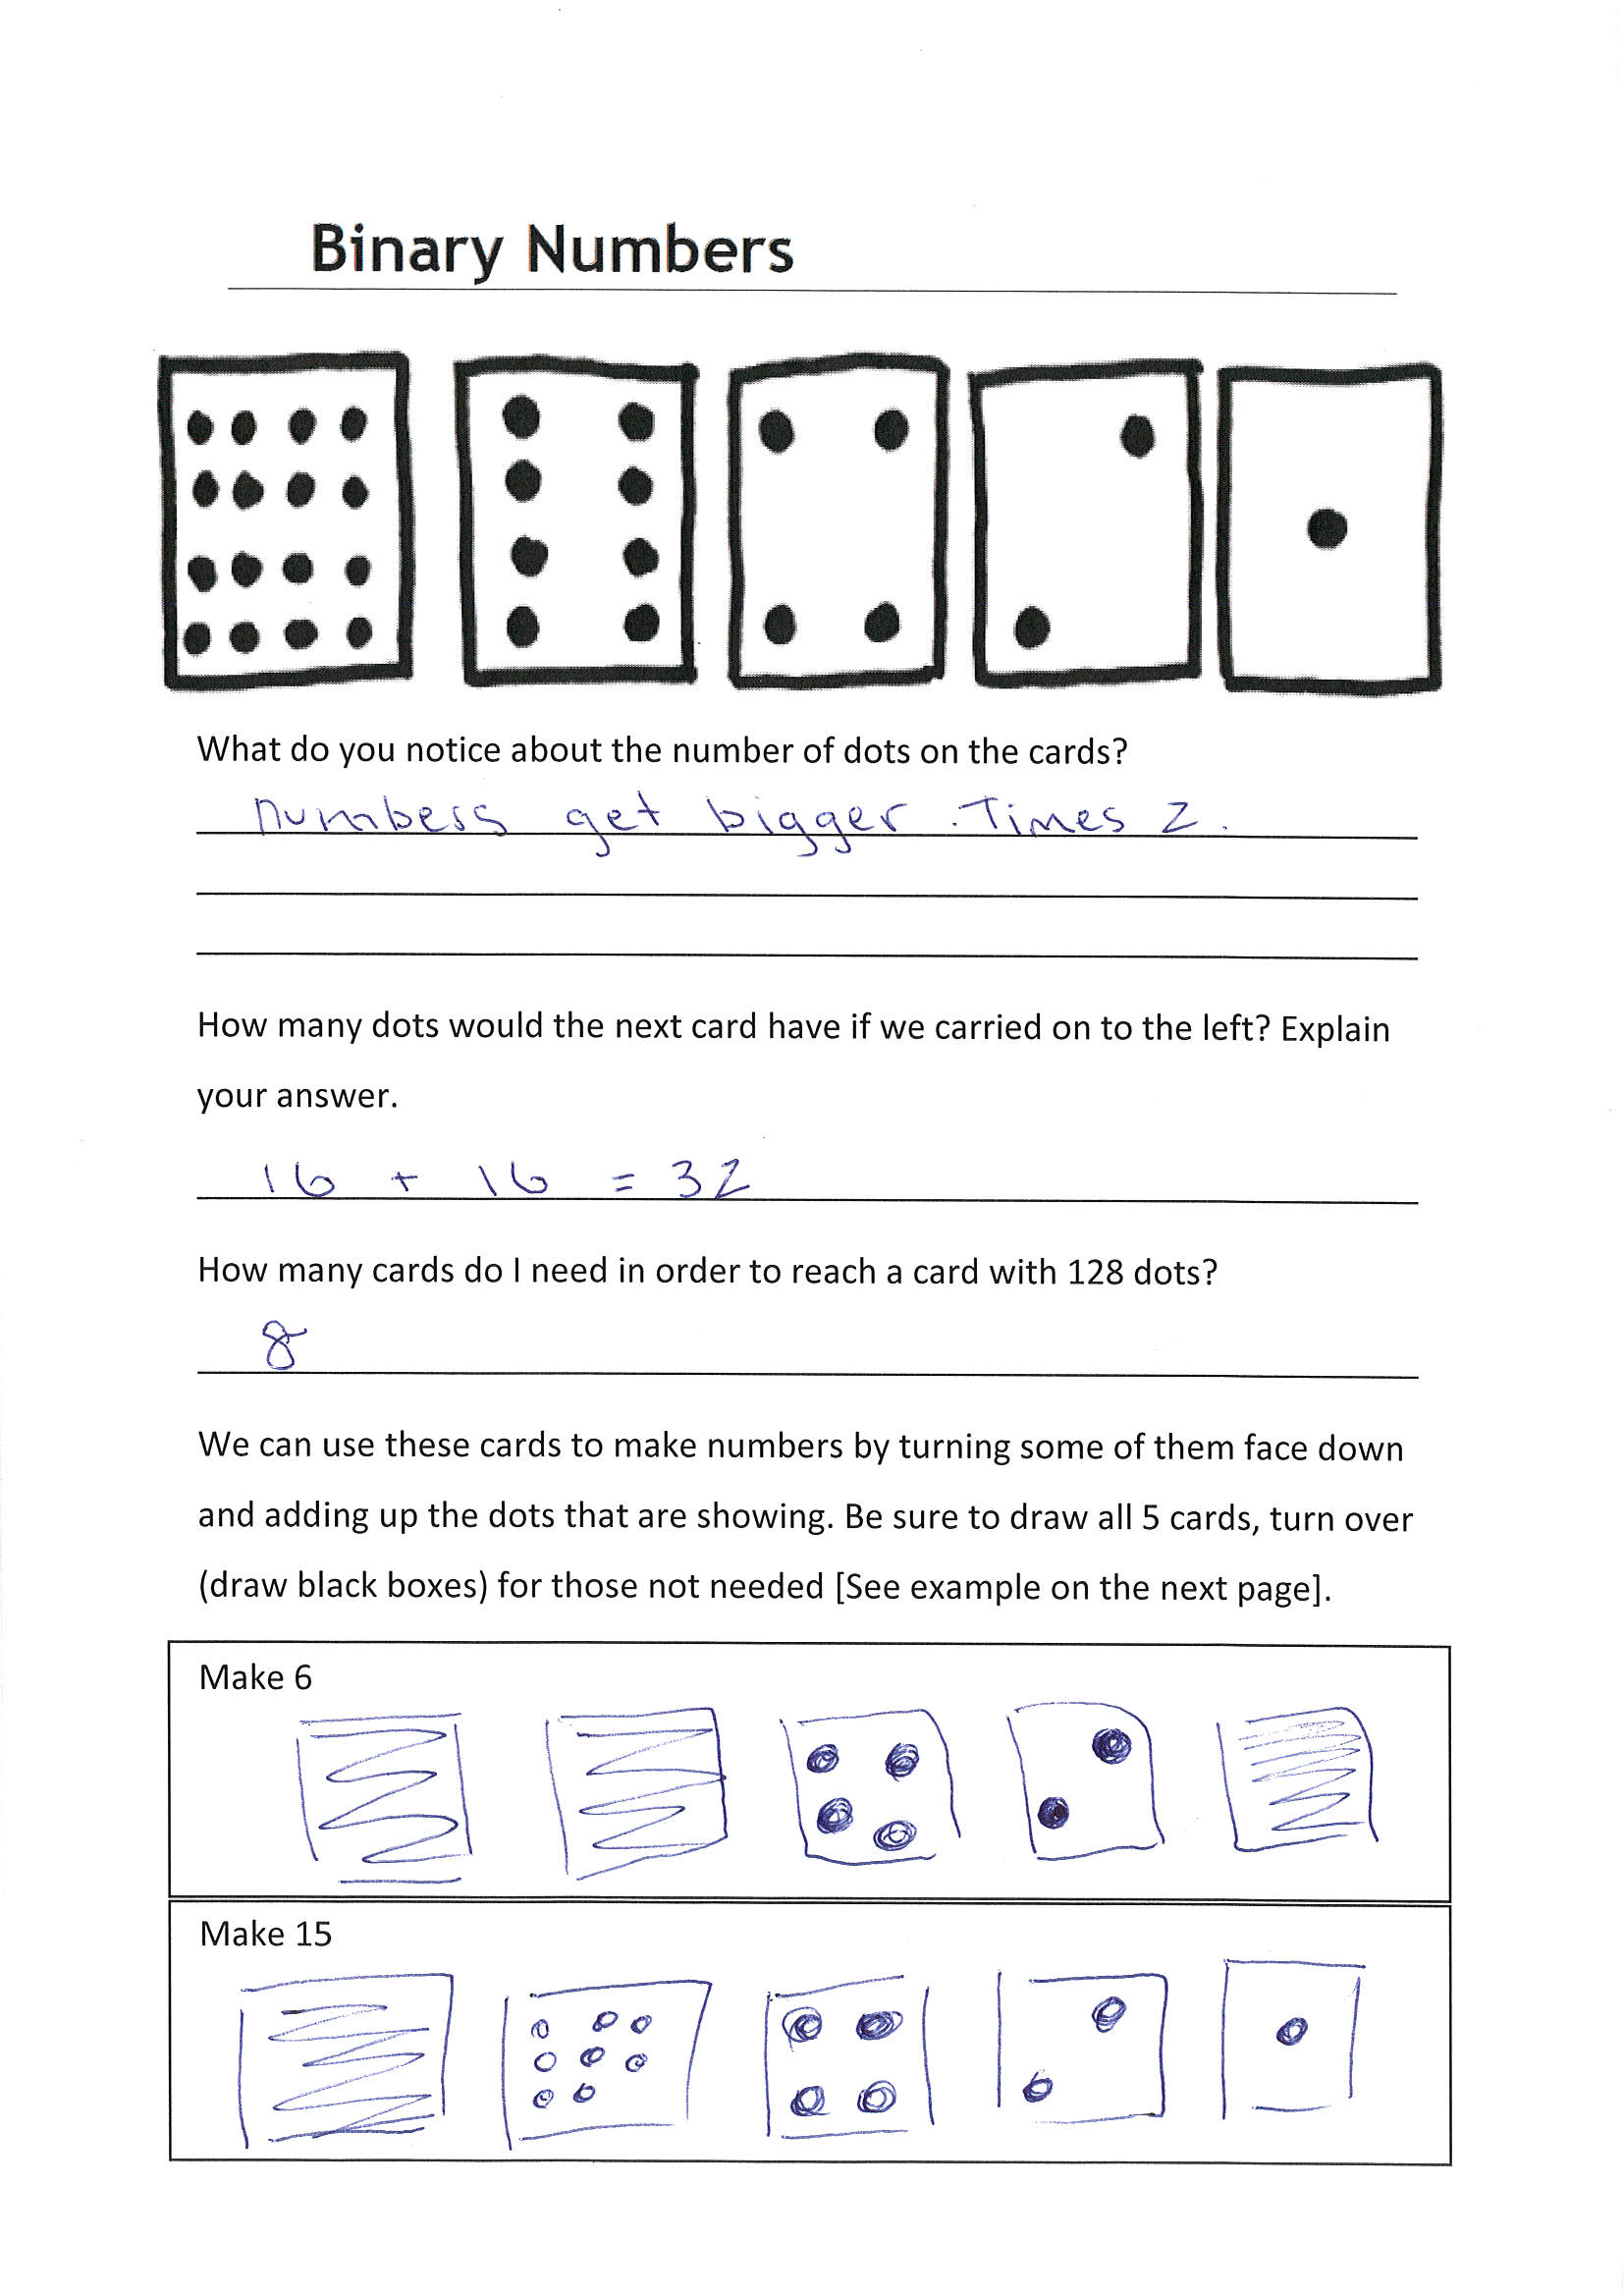 Worksheet On Adding Binary Numbers